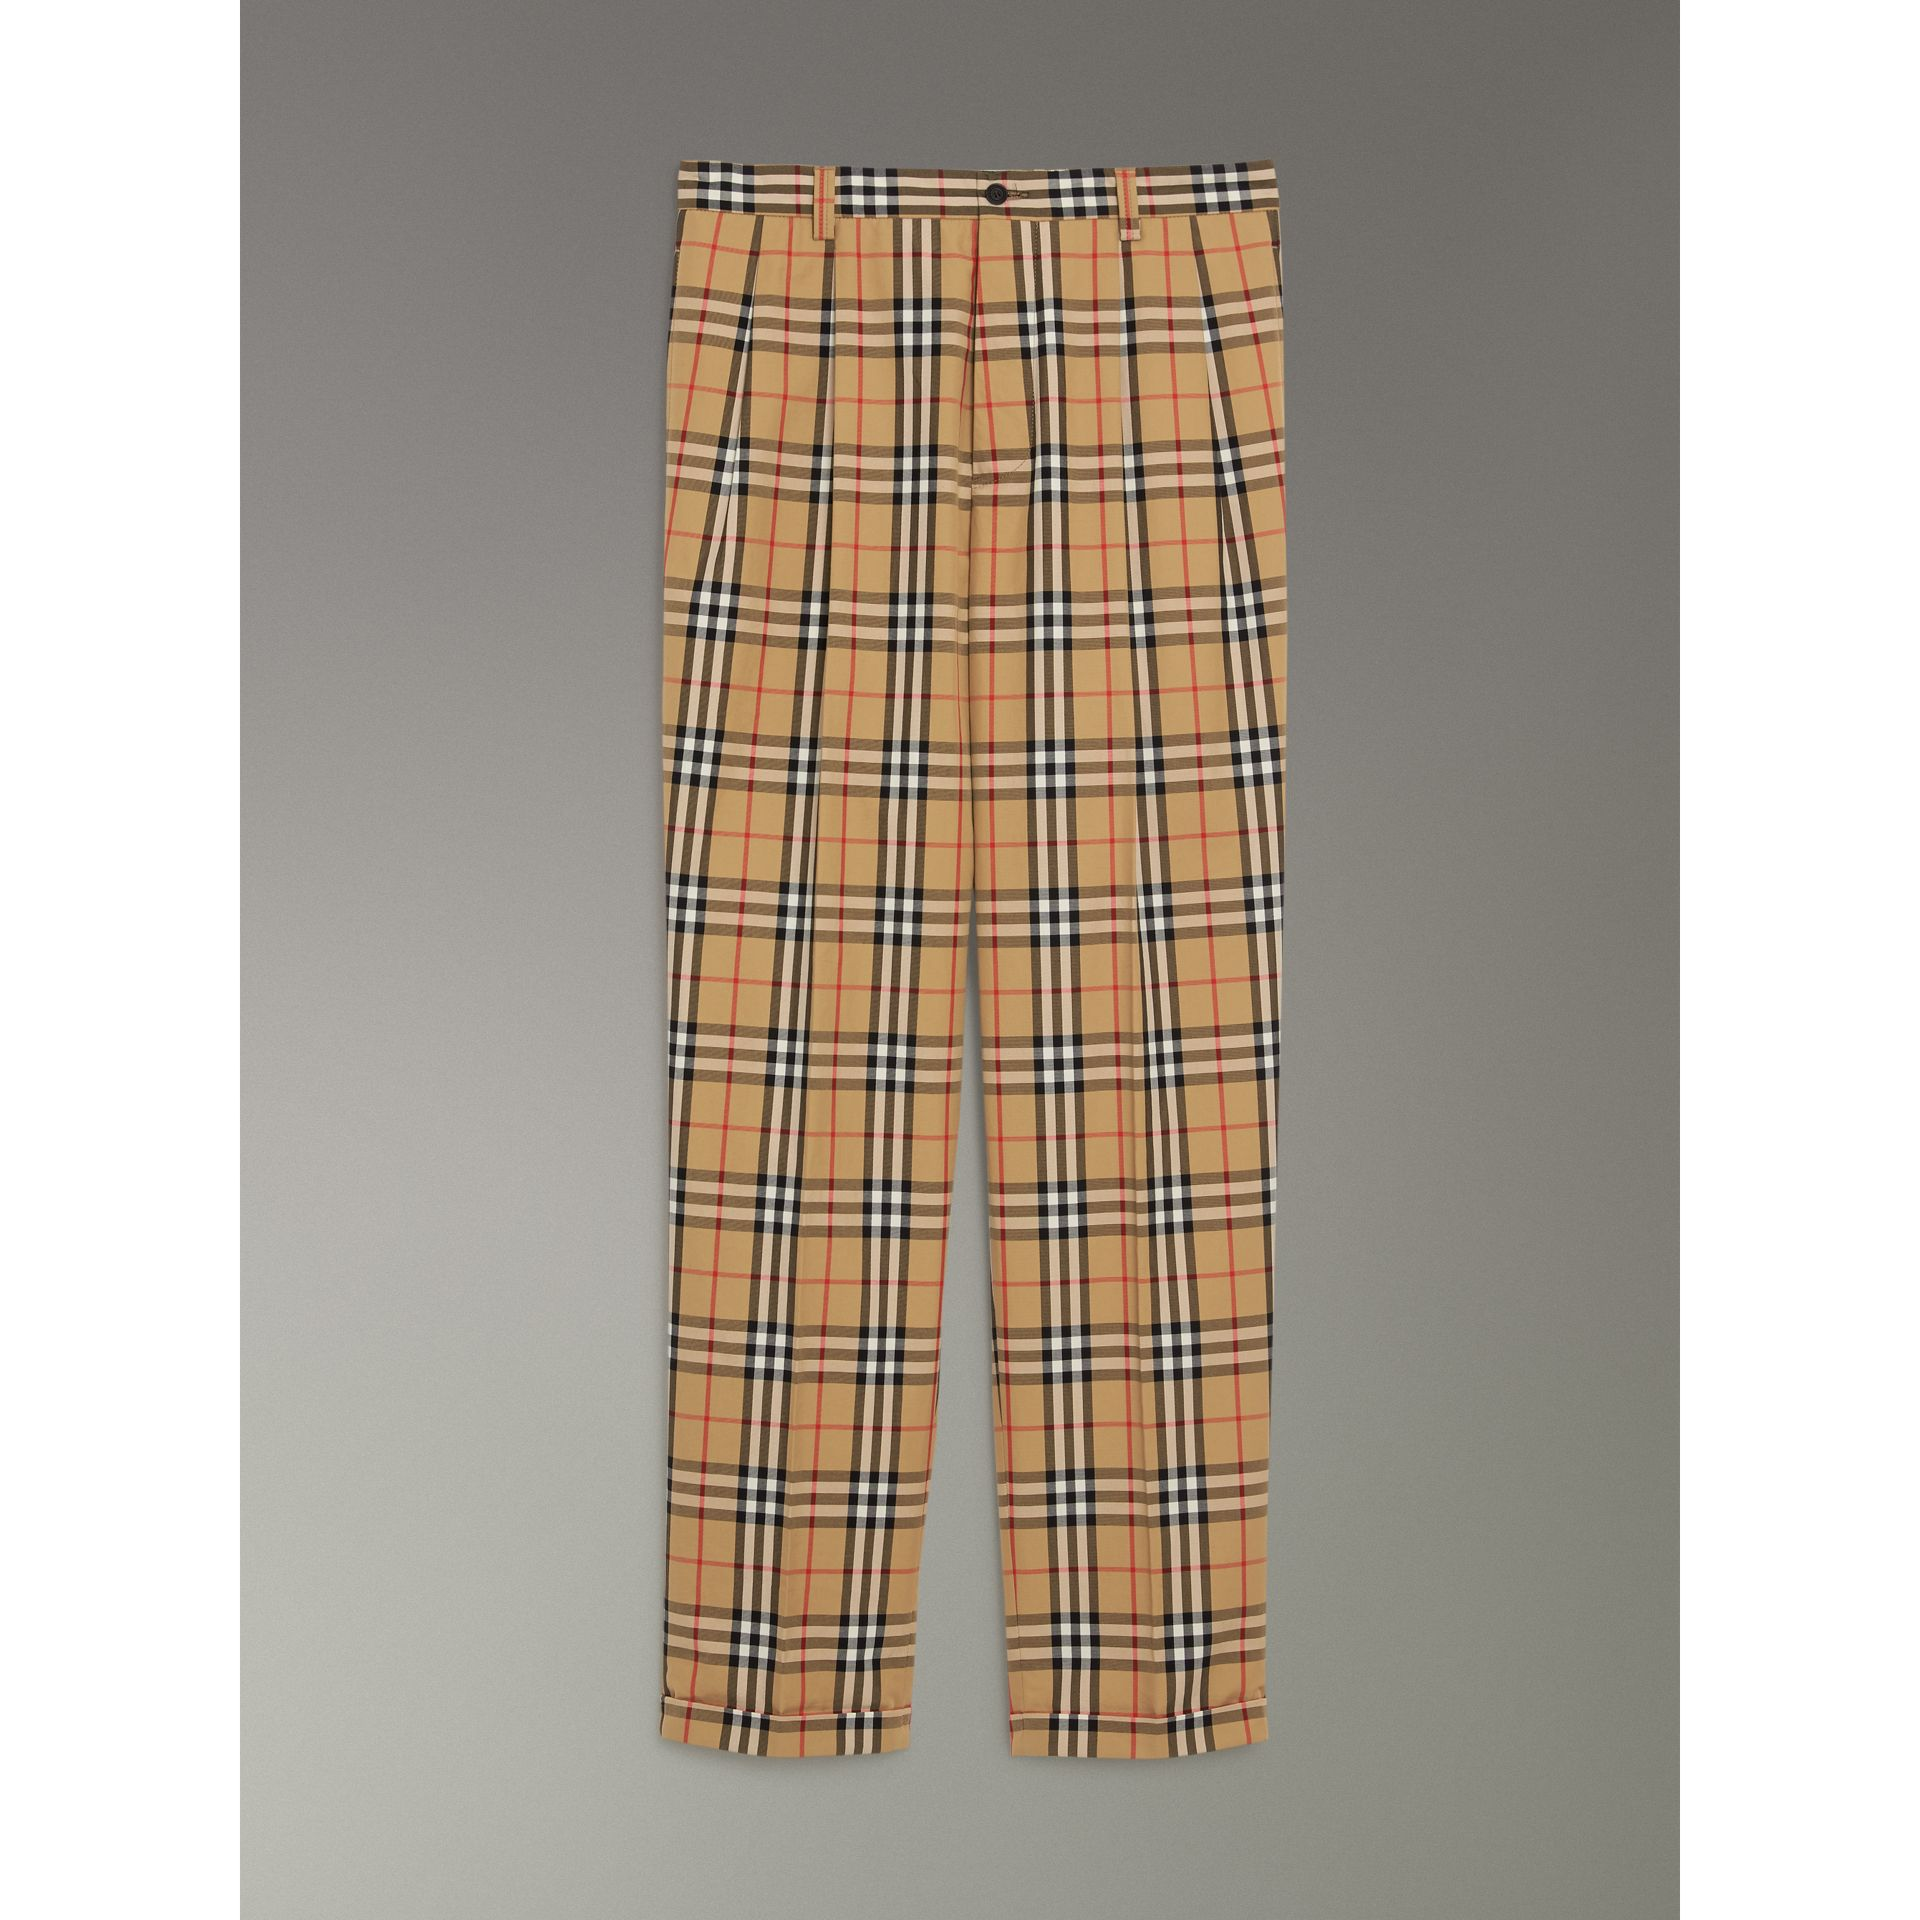 Pantalon en coton à motif Vintage check (Jaune Antique) - Homme | Burberry - photo de la galerie 3